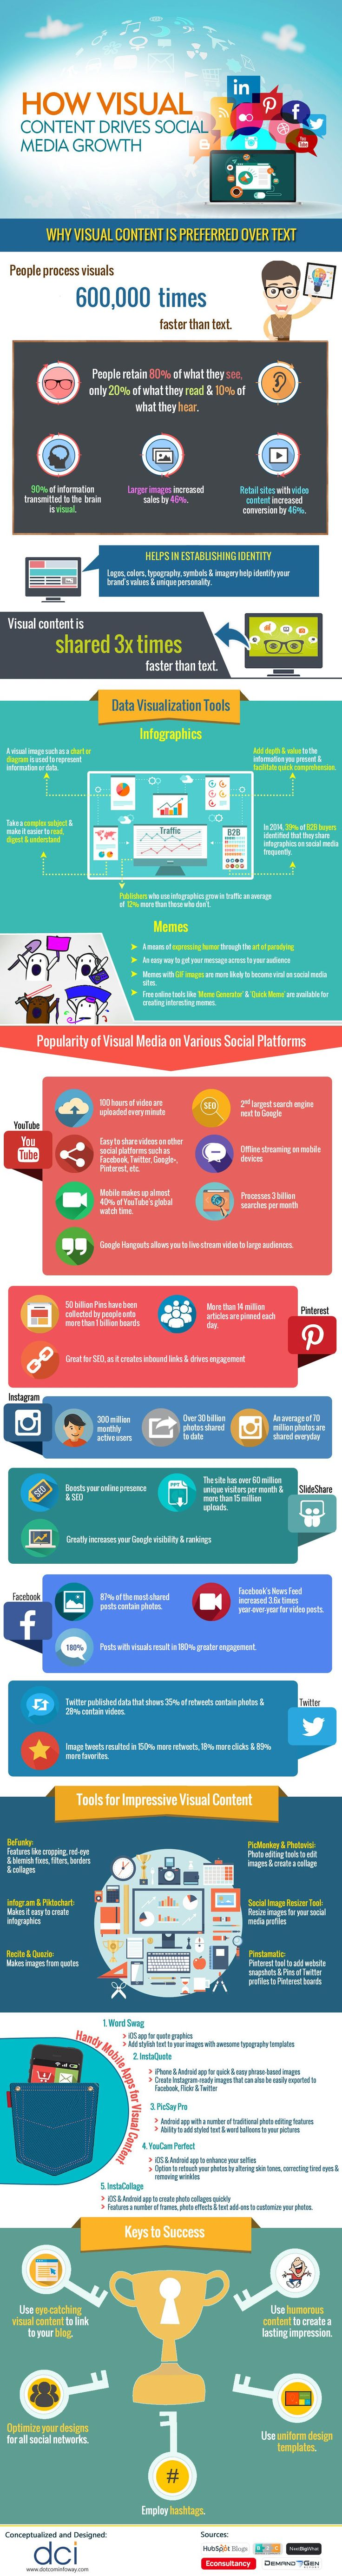 Growing Social Media With Visual Content